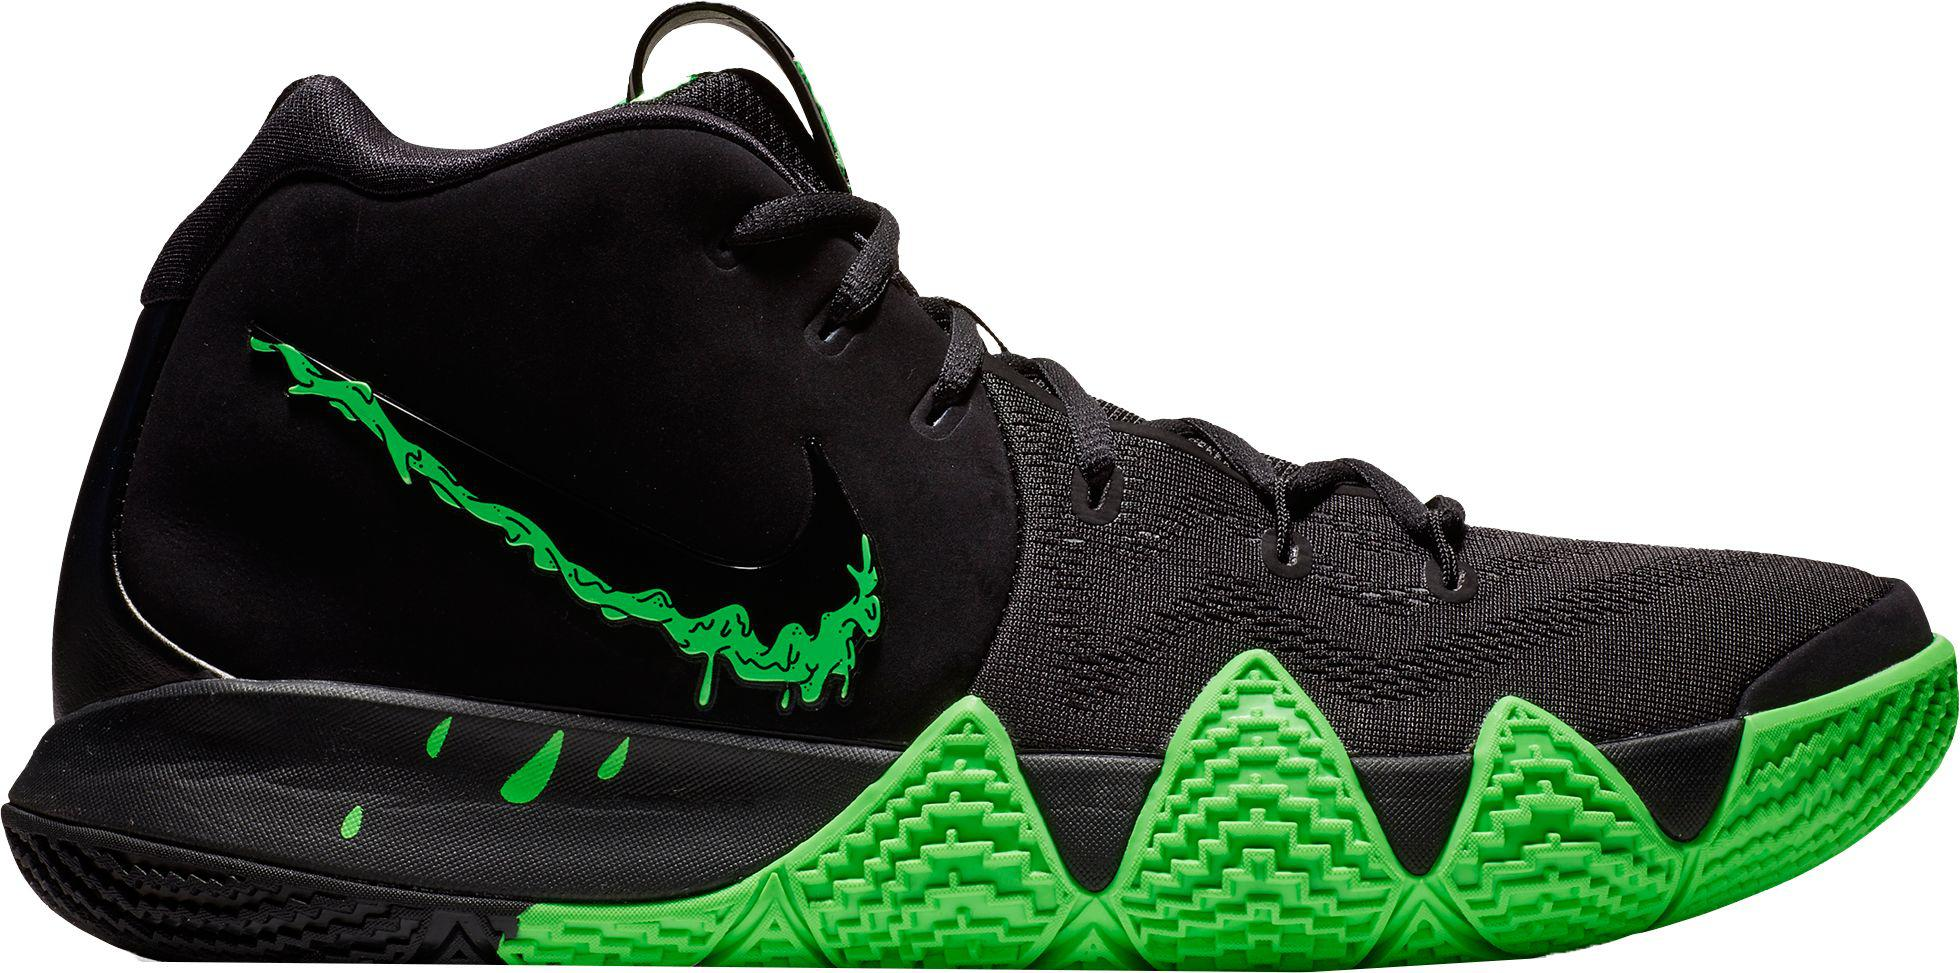 Nike Suede Kyrie 4 Basketball Shoes in